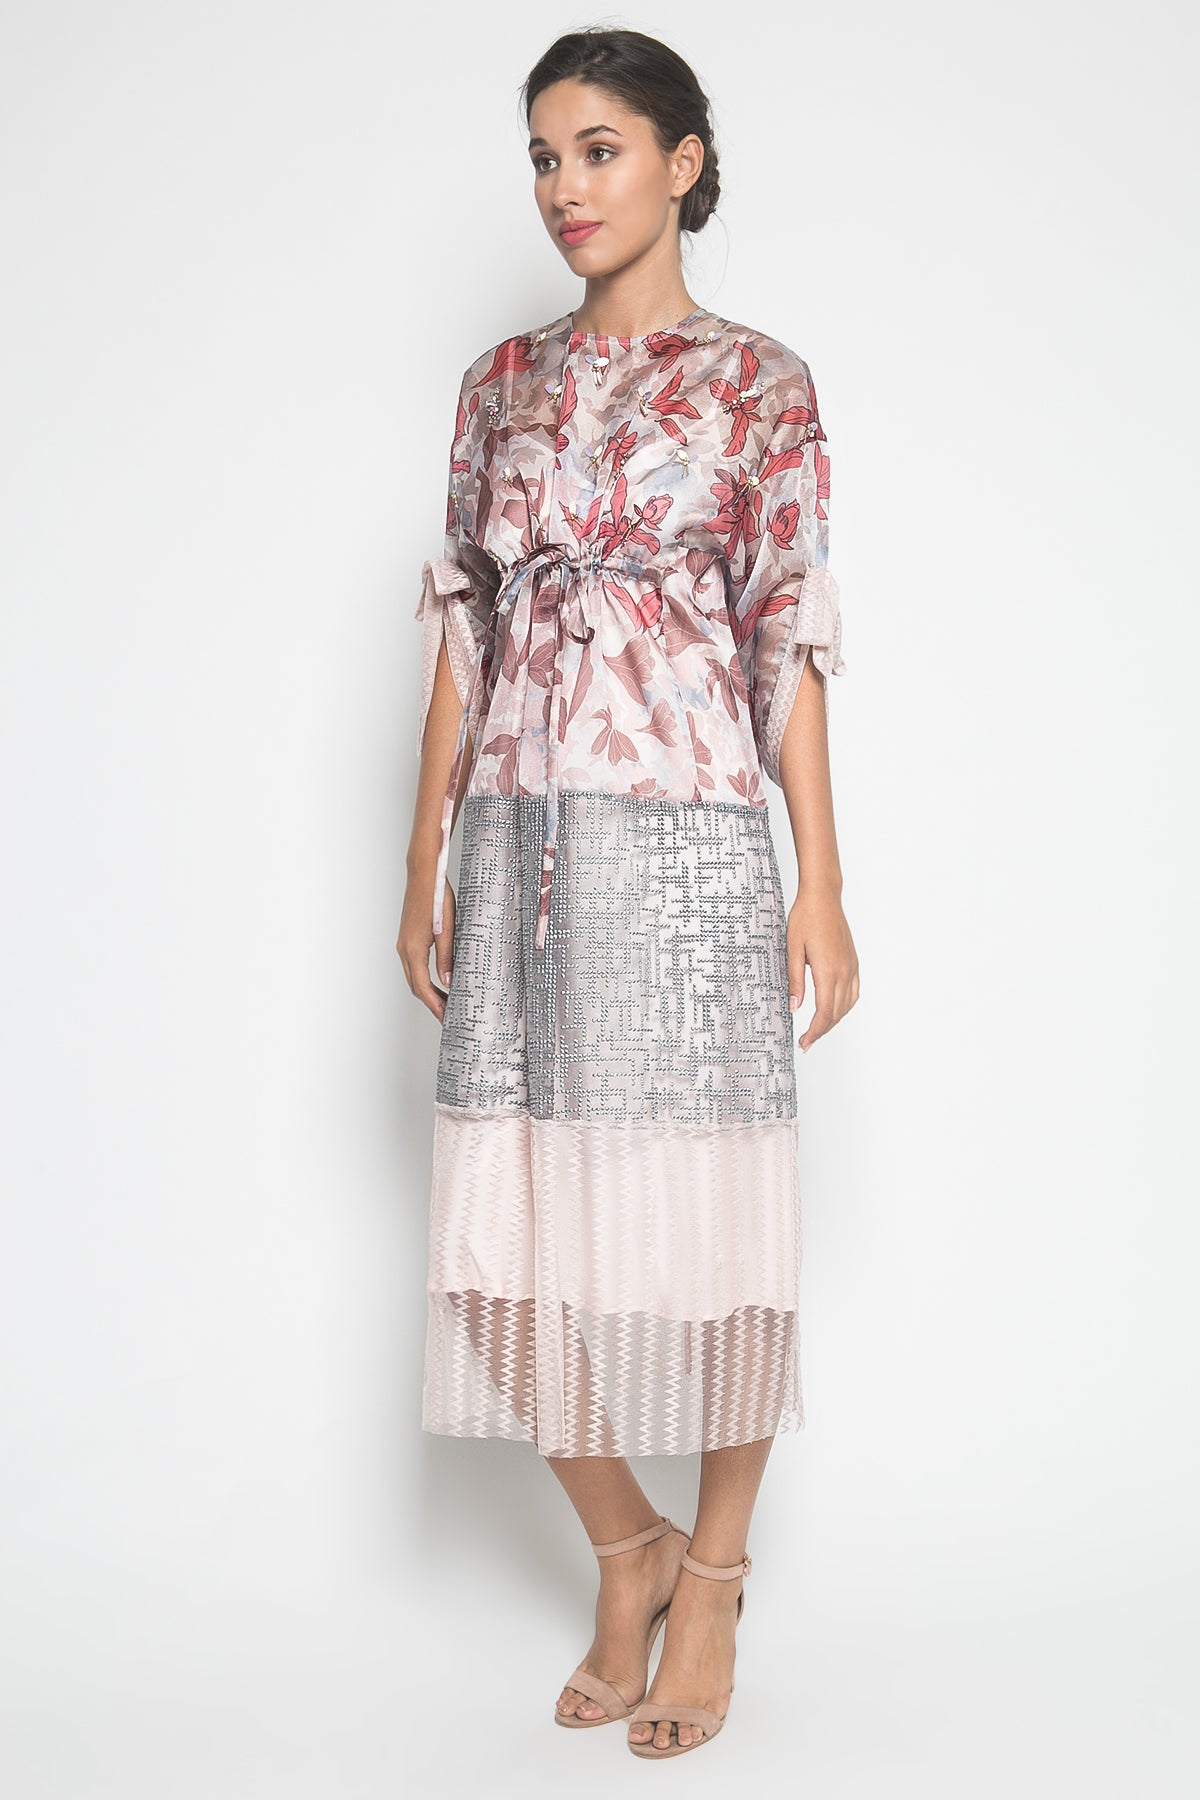 MYVB Atelier Noemi Embroidered Organza Dress in Pinkish Grey